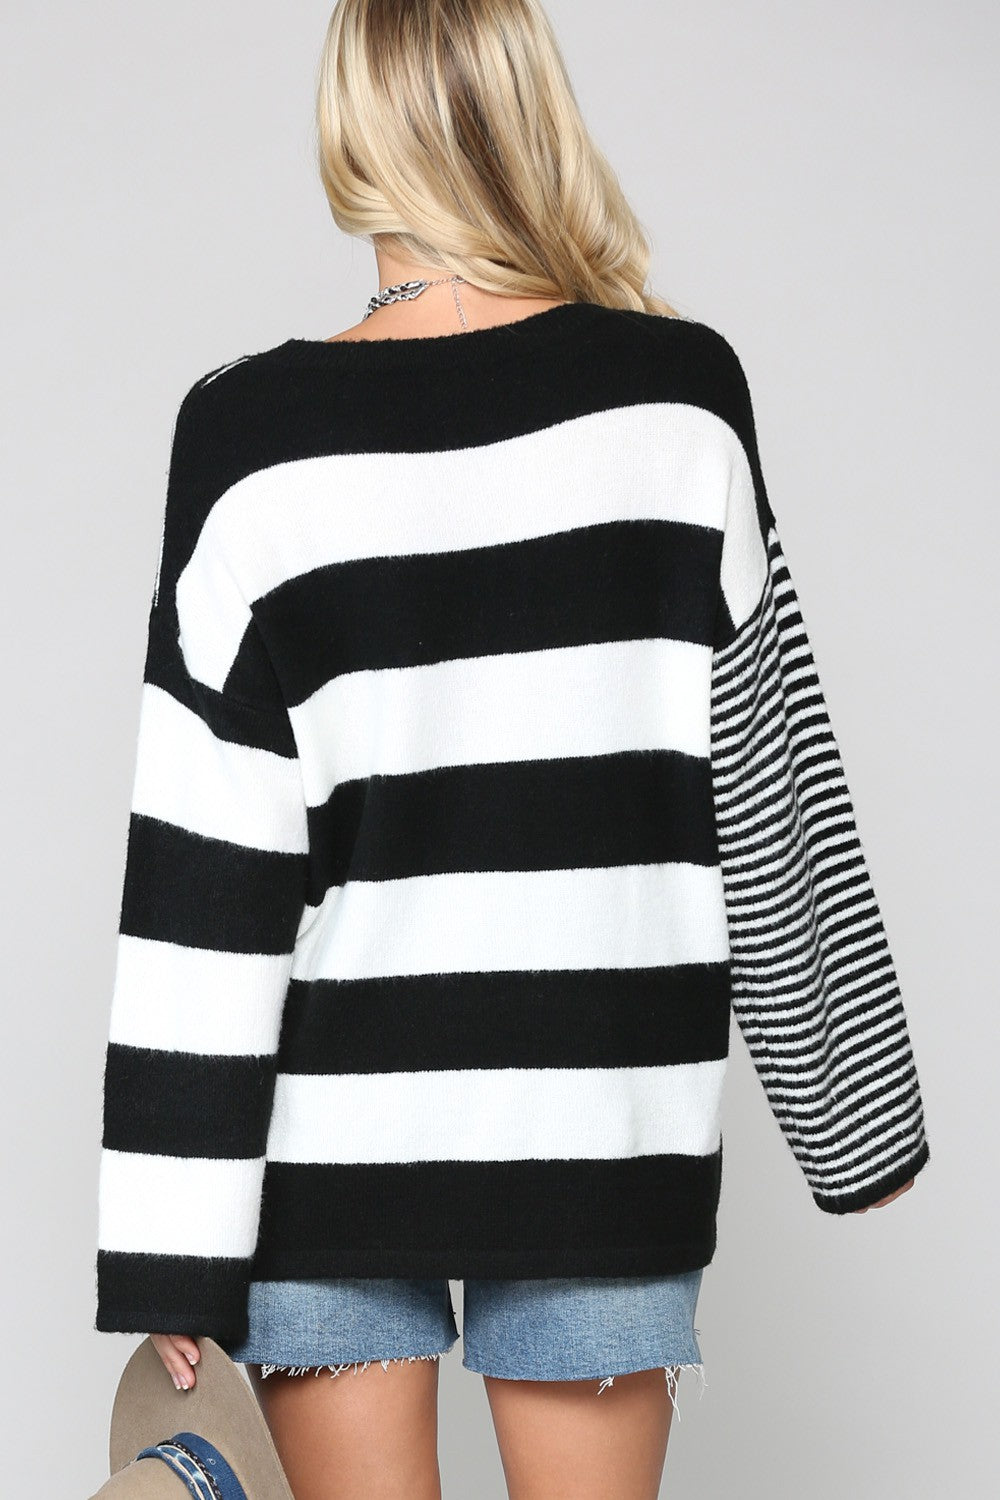 JAILHOUSE ROCK SWEATER - Penny Lane Boutique